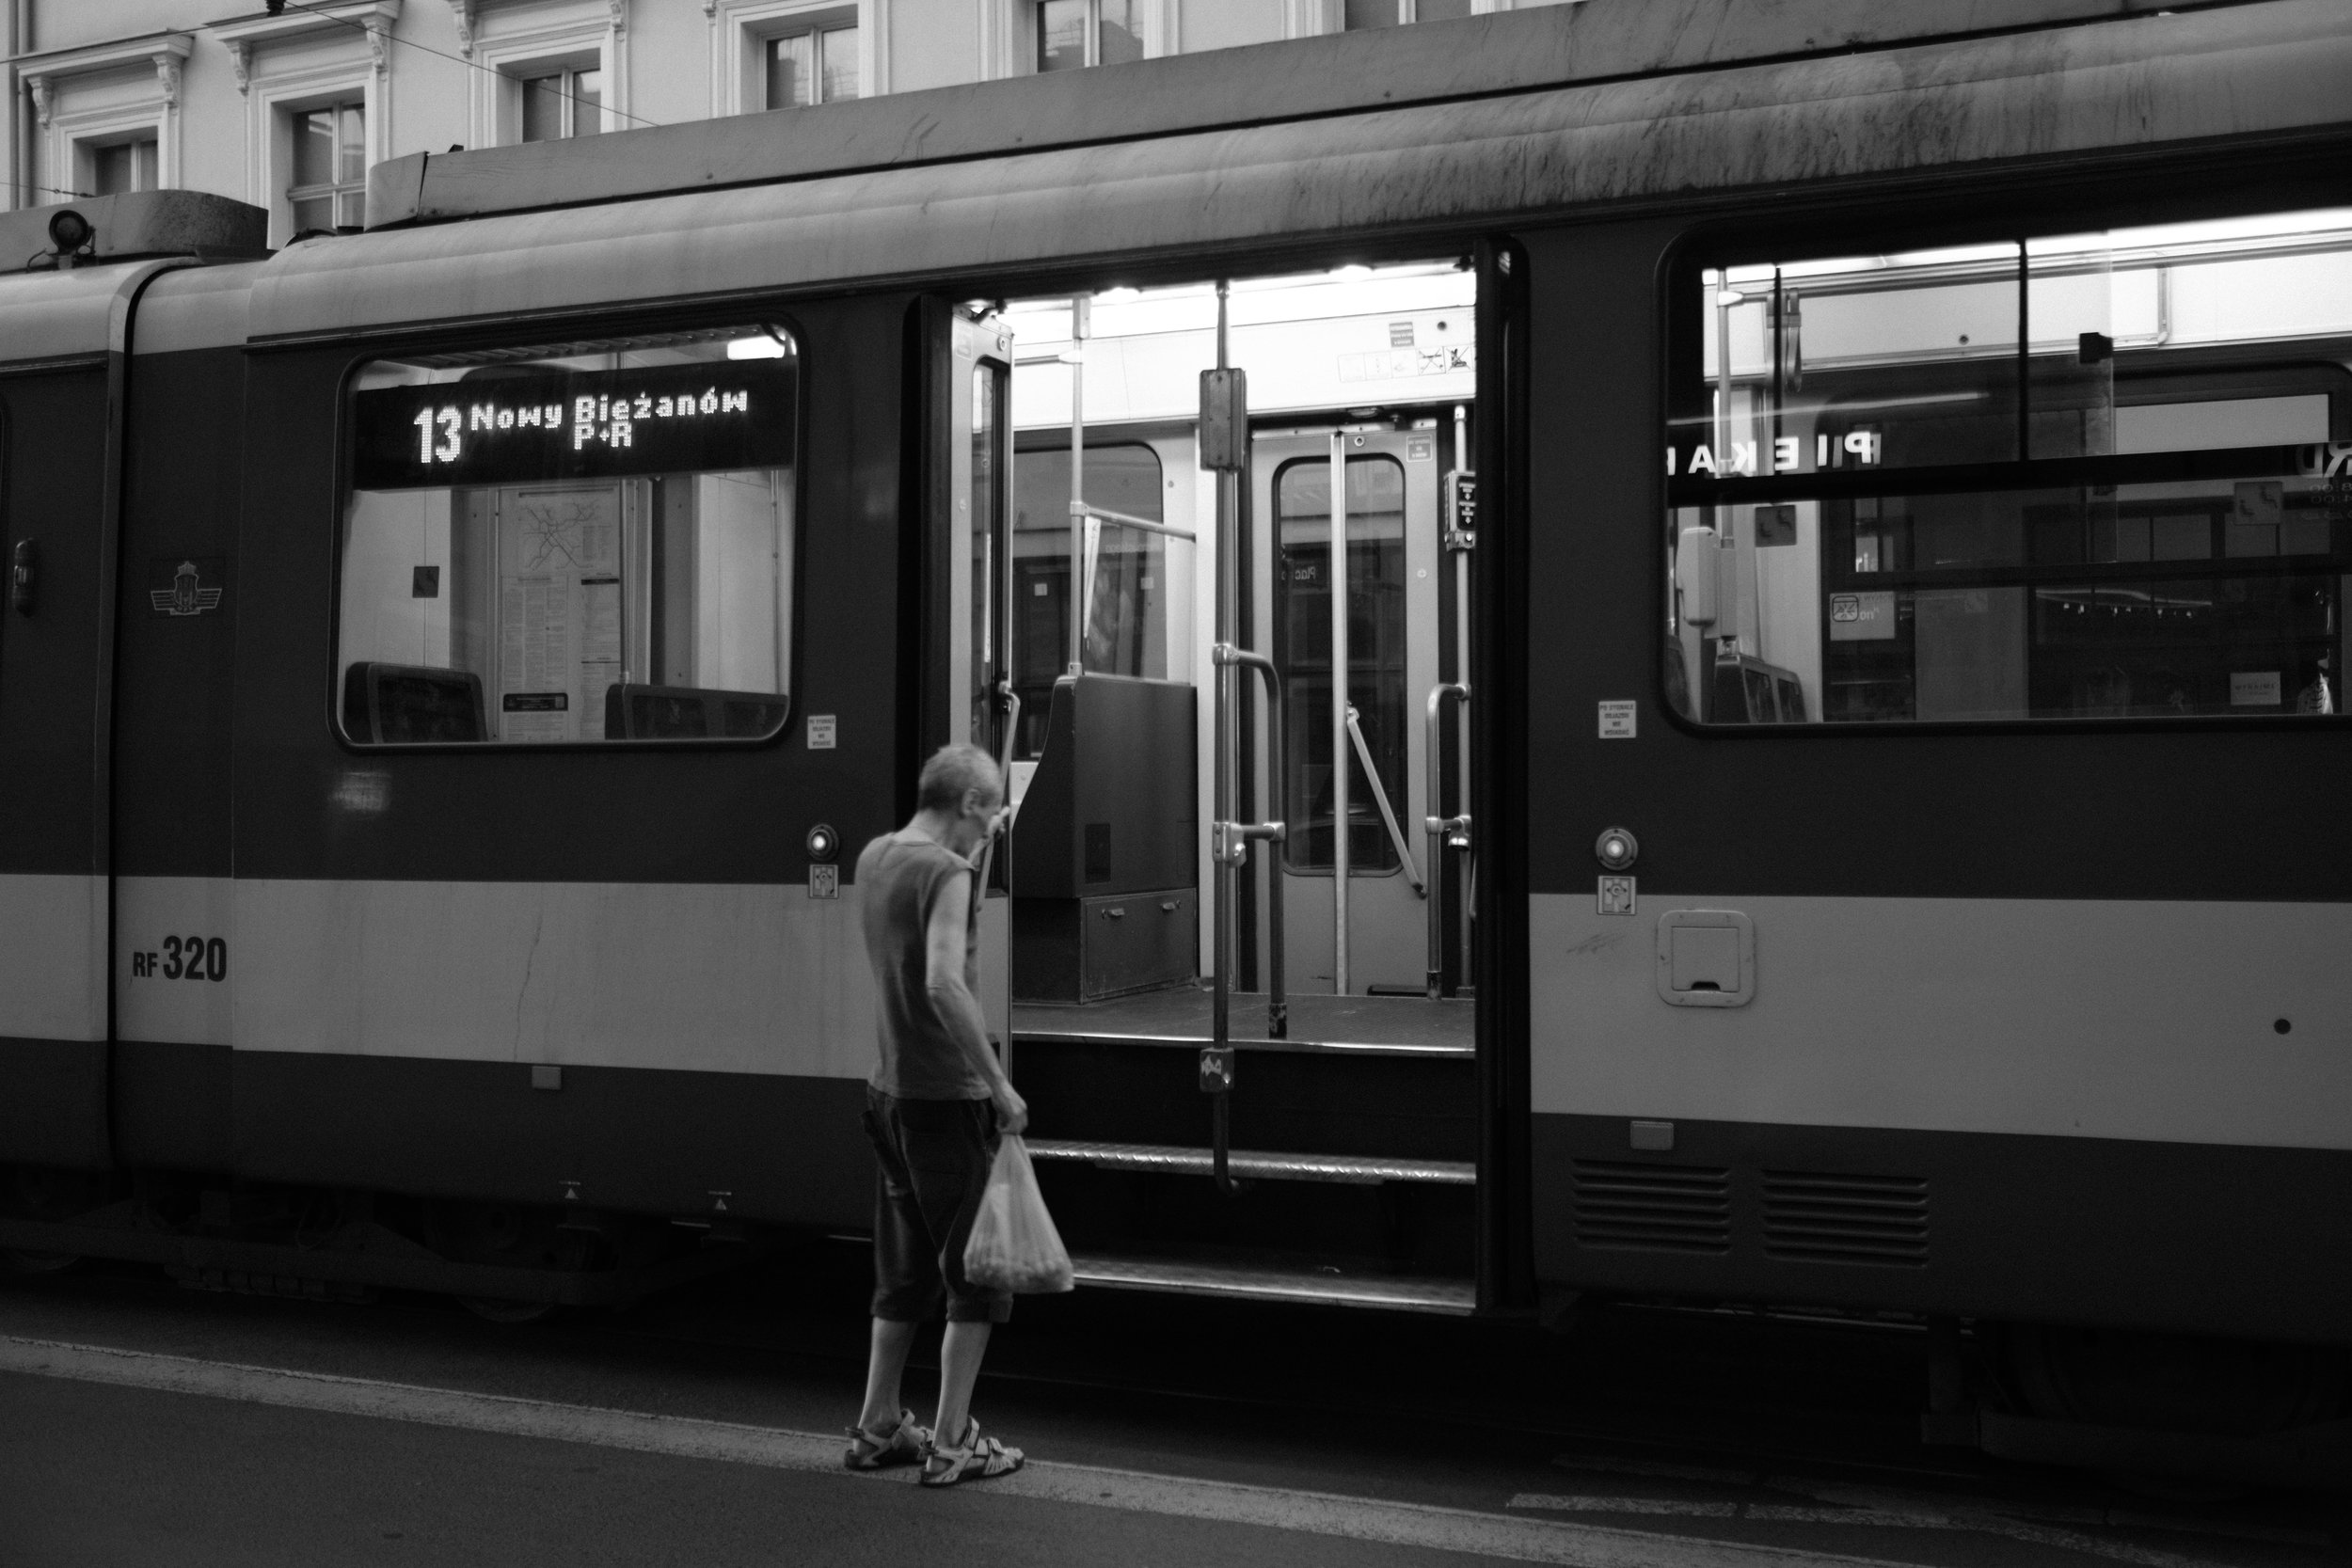 A man is entering a tram in Krakow Poland